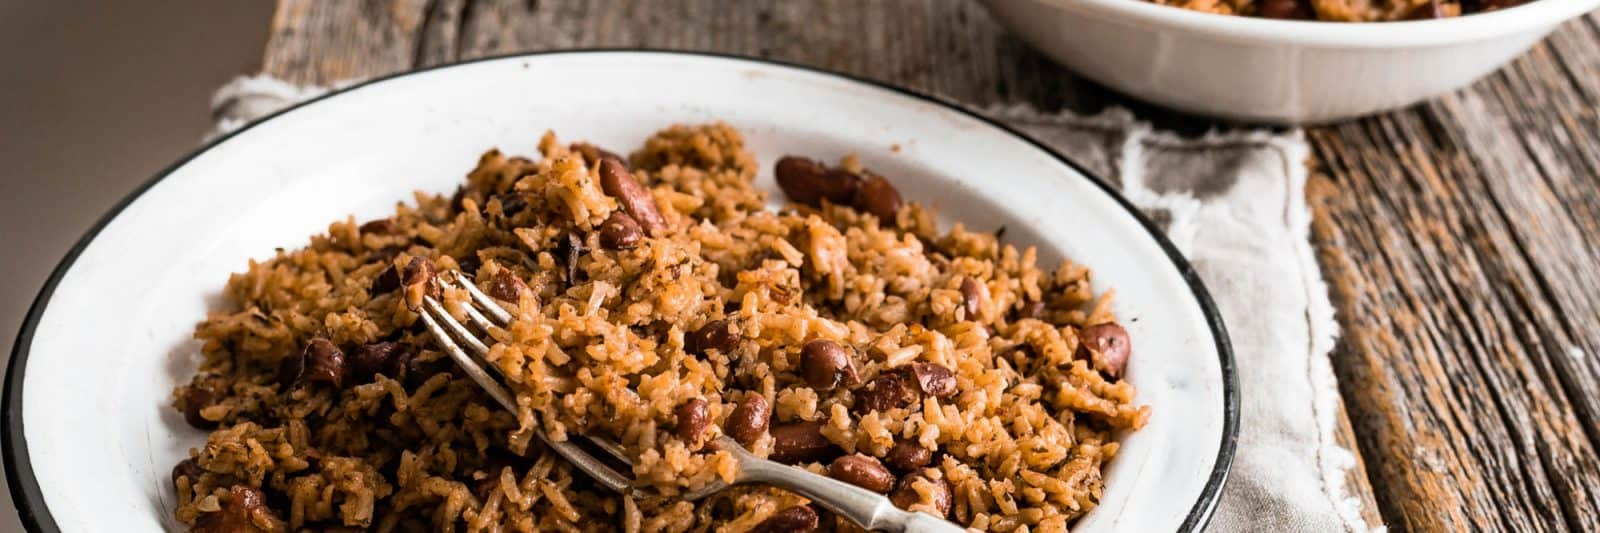 Dark rice in an enamel plate with a fork in it